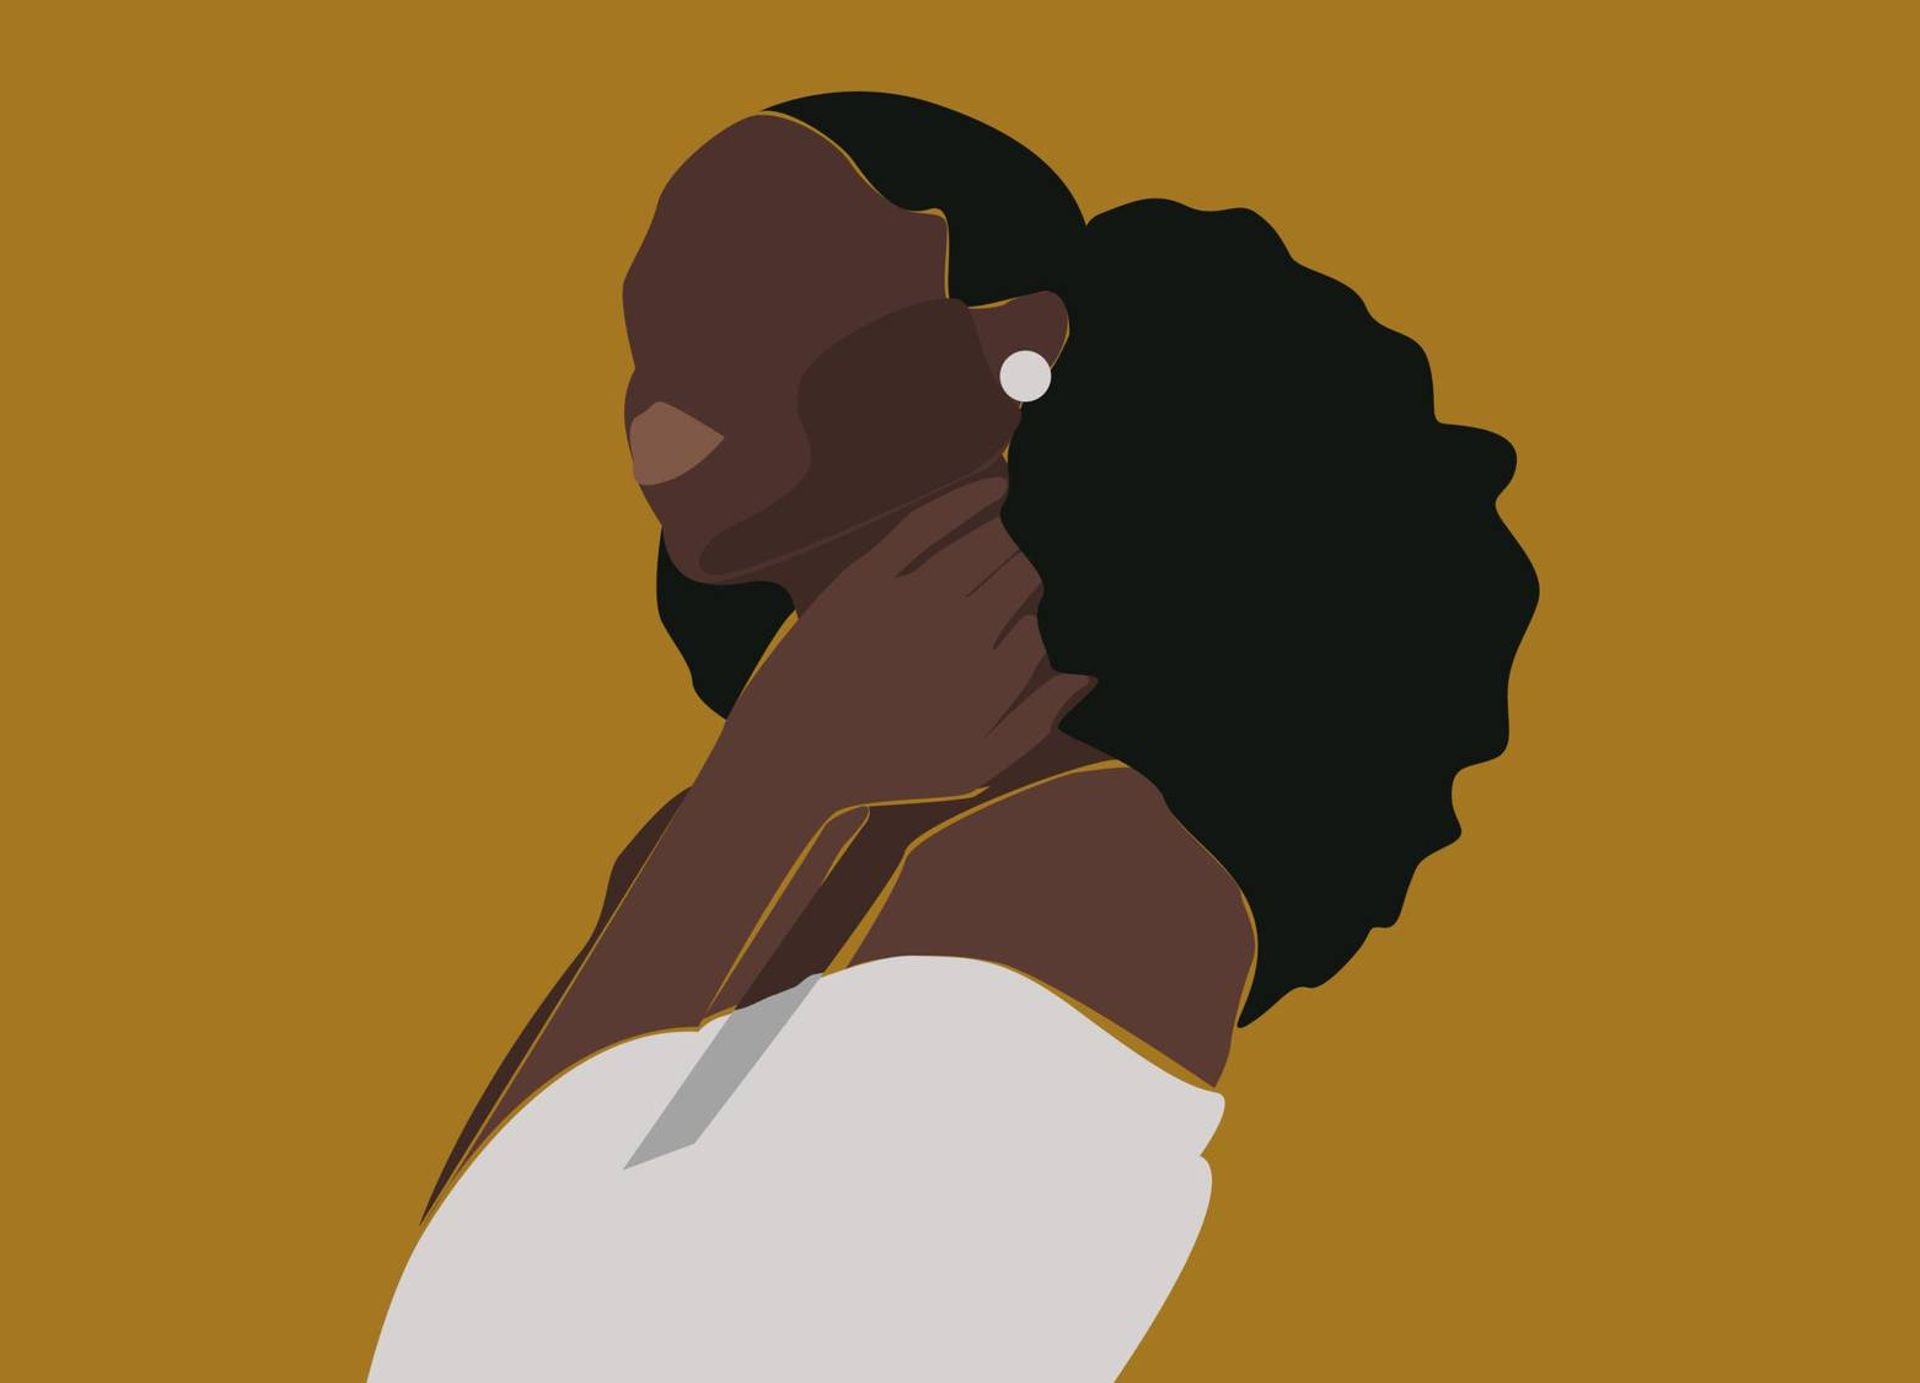 Illustration of Black woman in white blouse with white earrings on